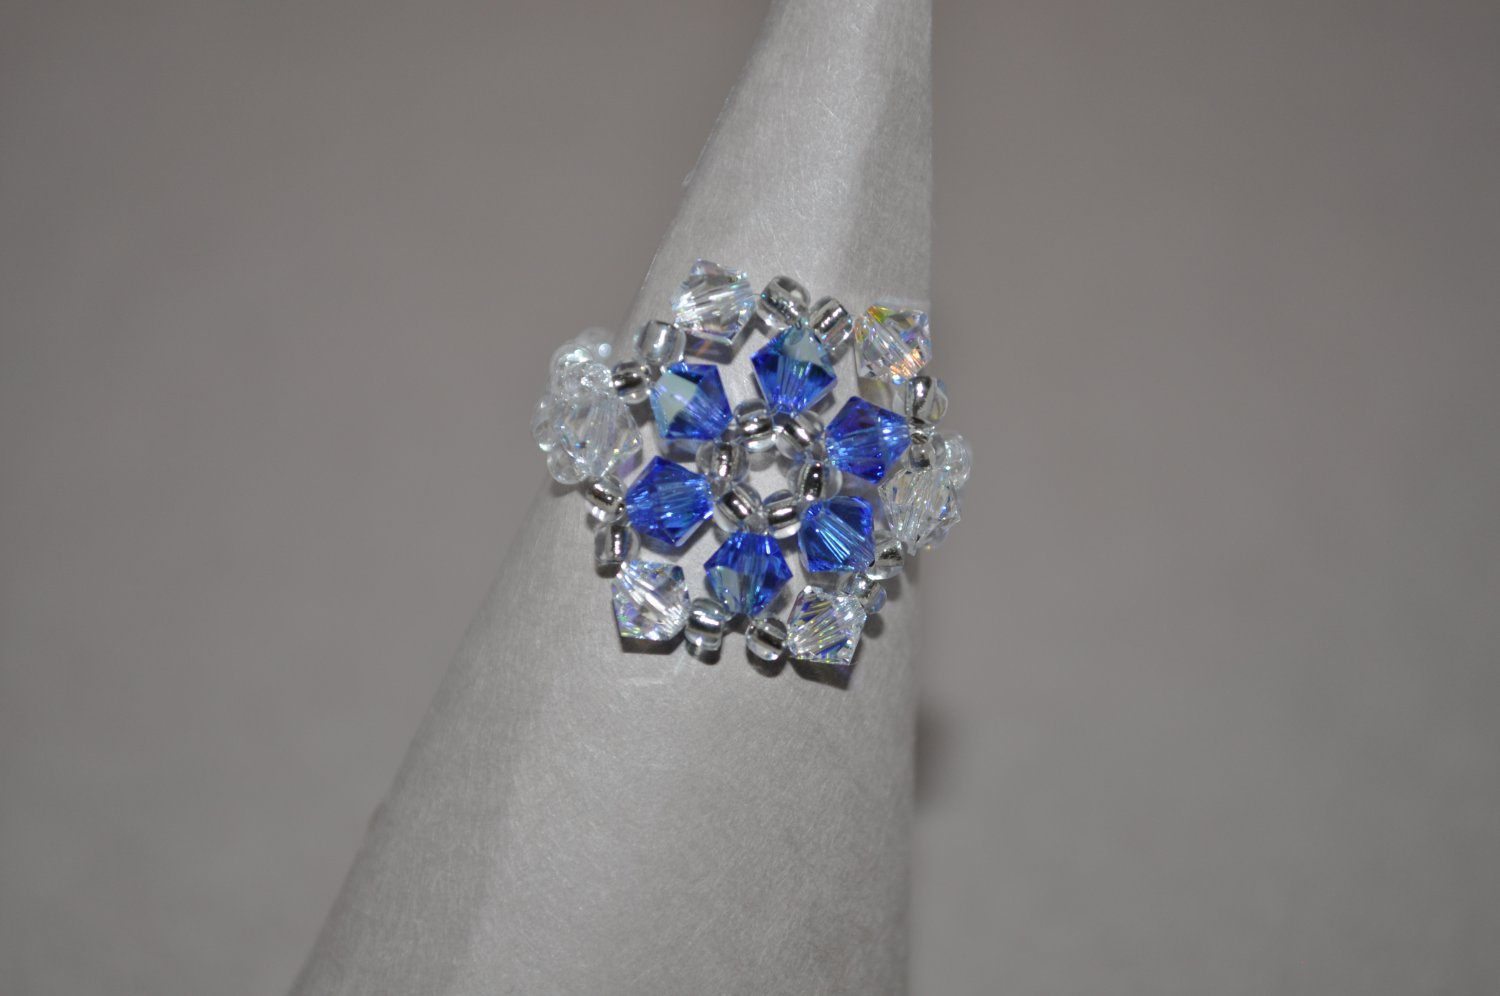 Crystal and Sapphire AB Swarovski Crystal Ring